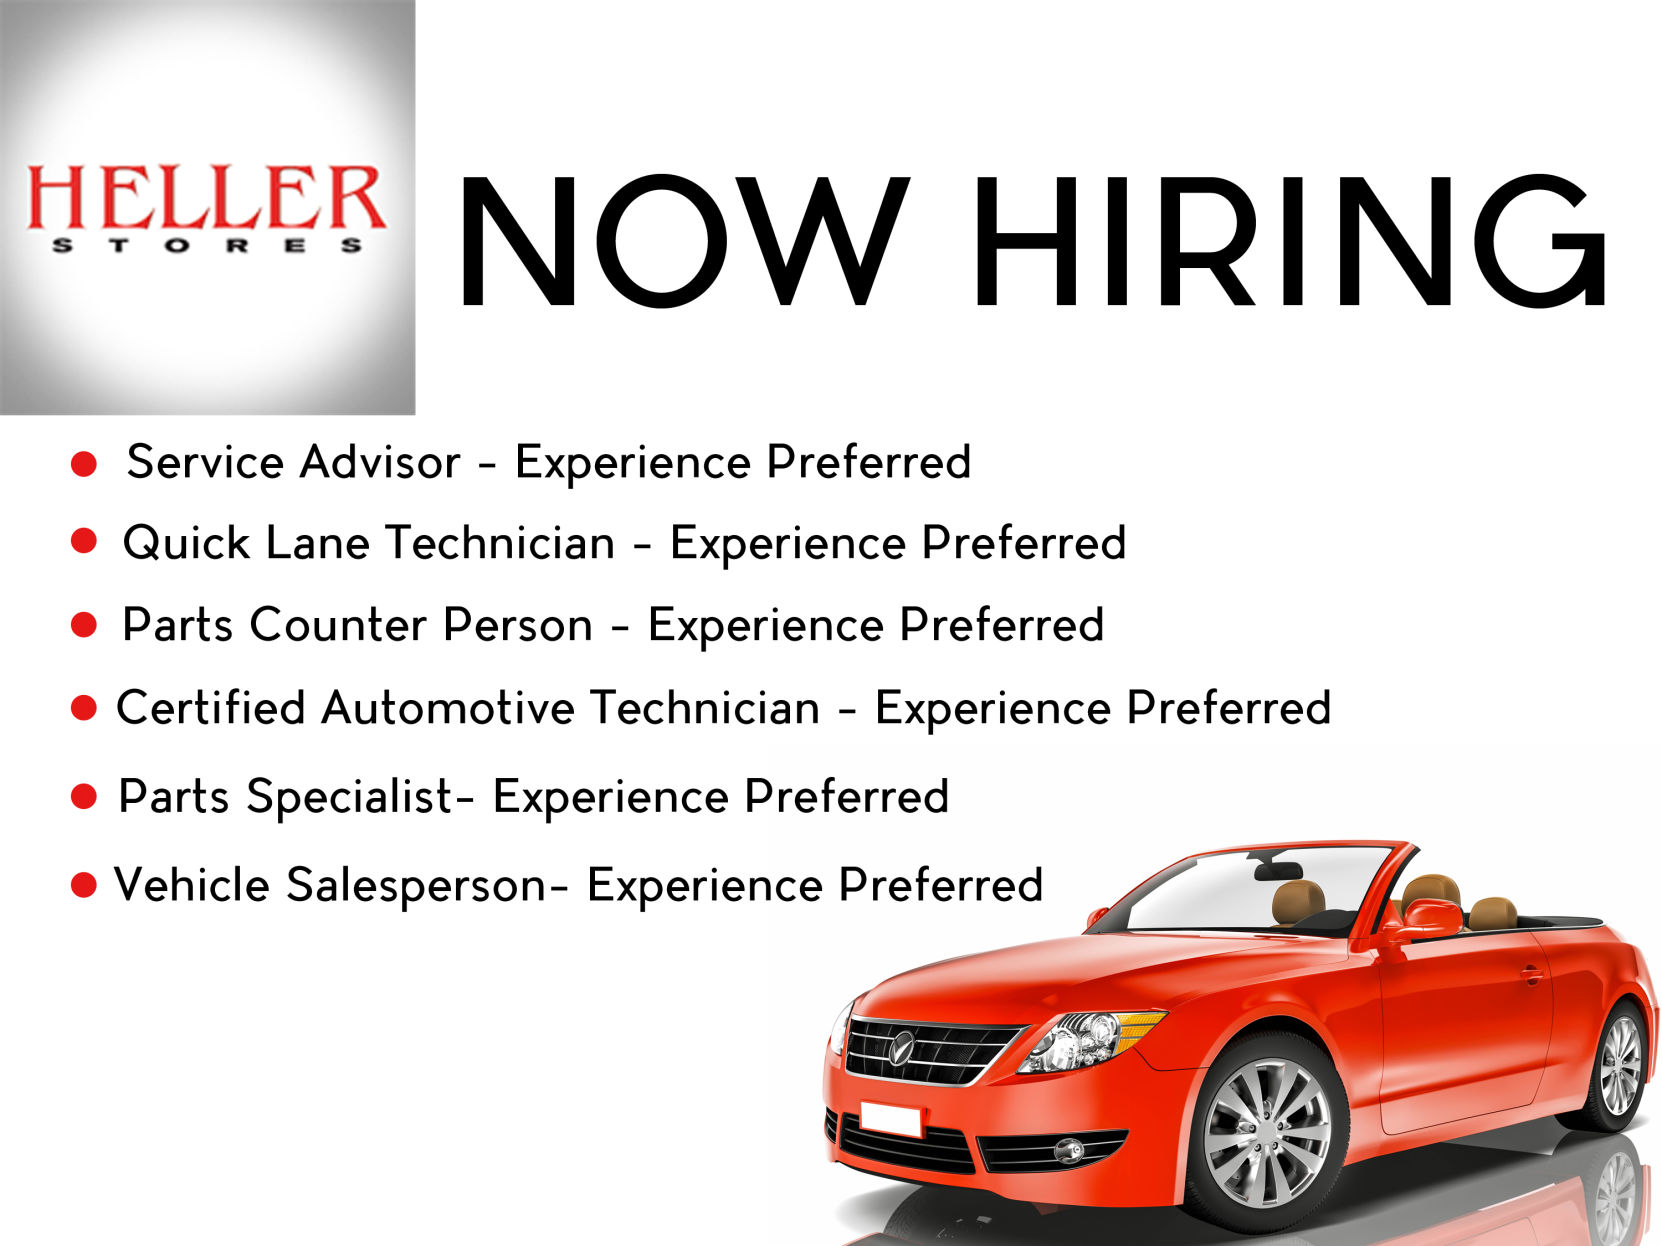 Heller ford is now hiring